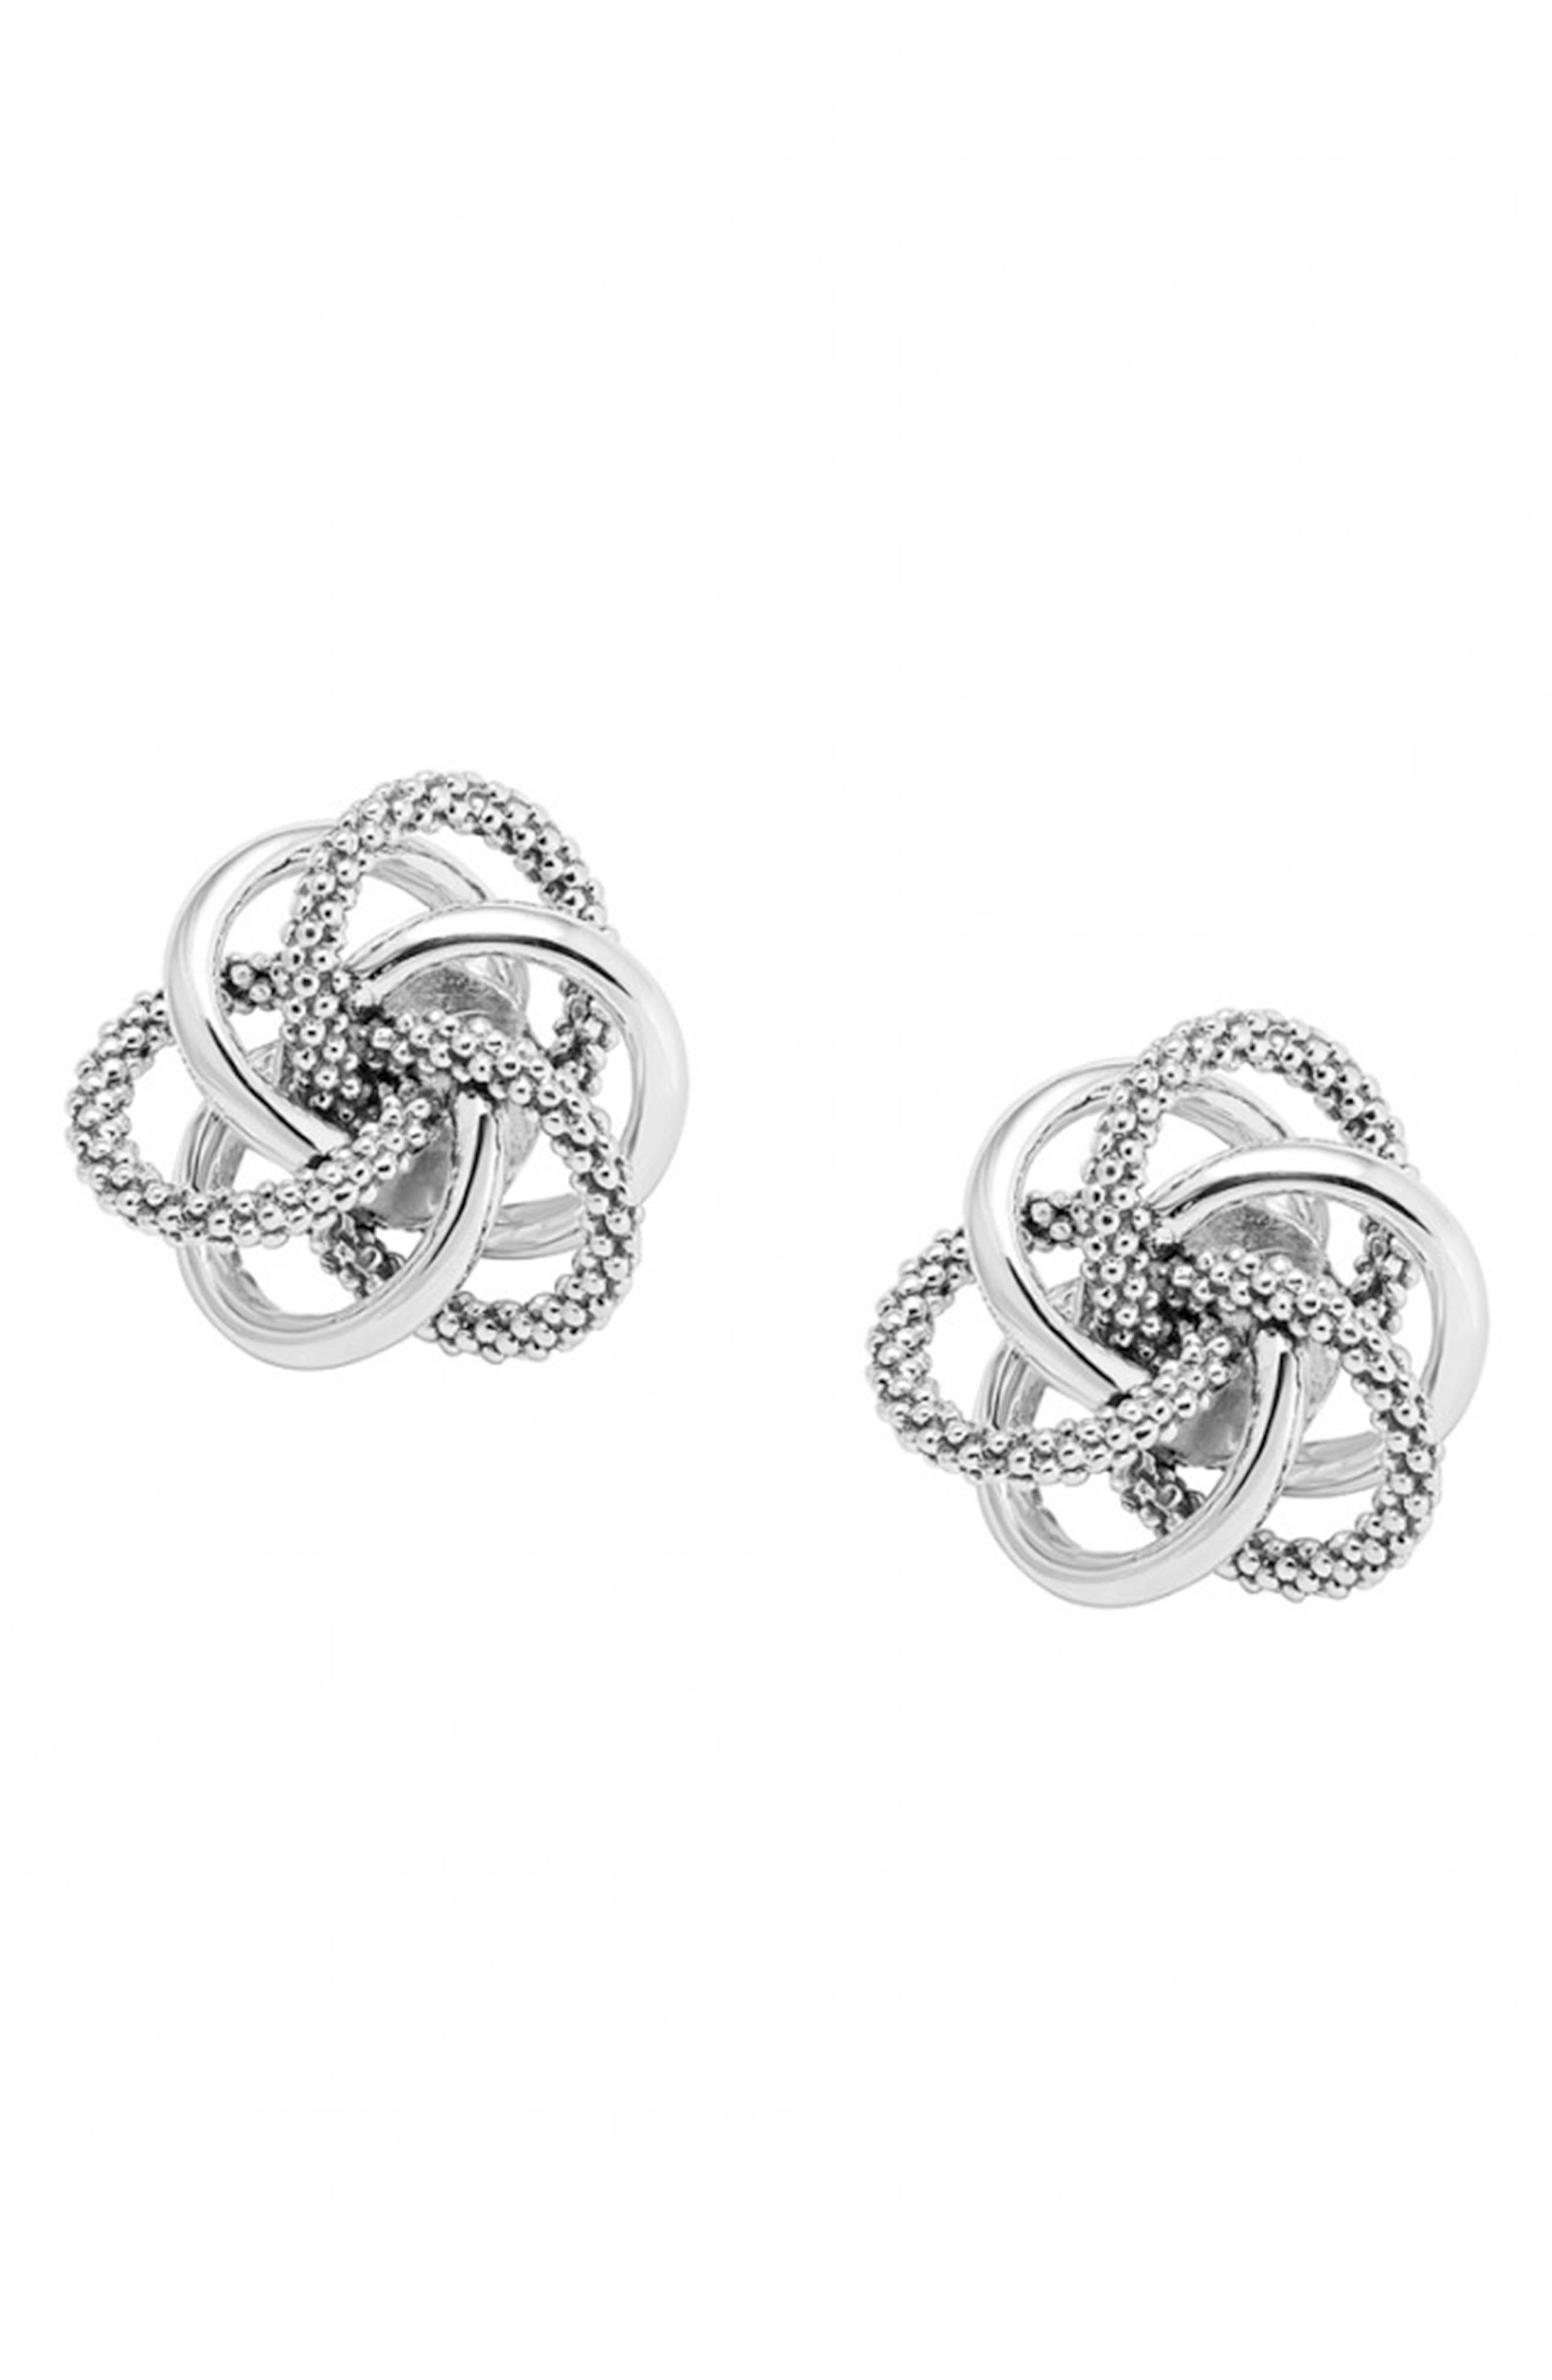 Caviar<sup>™</sup> Stud Earrings,                         Main,                         color, STERLING SILVER